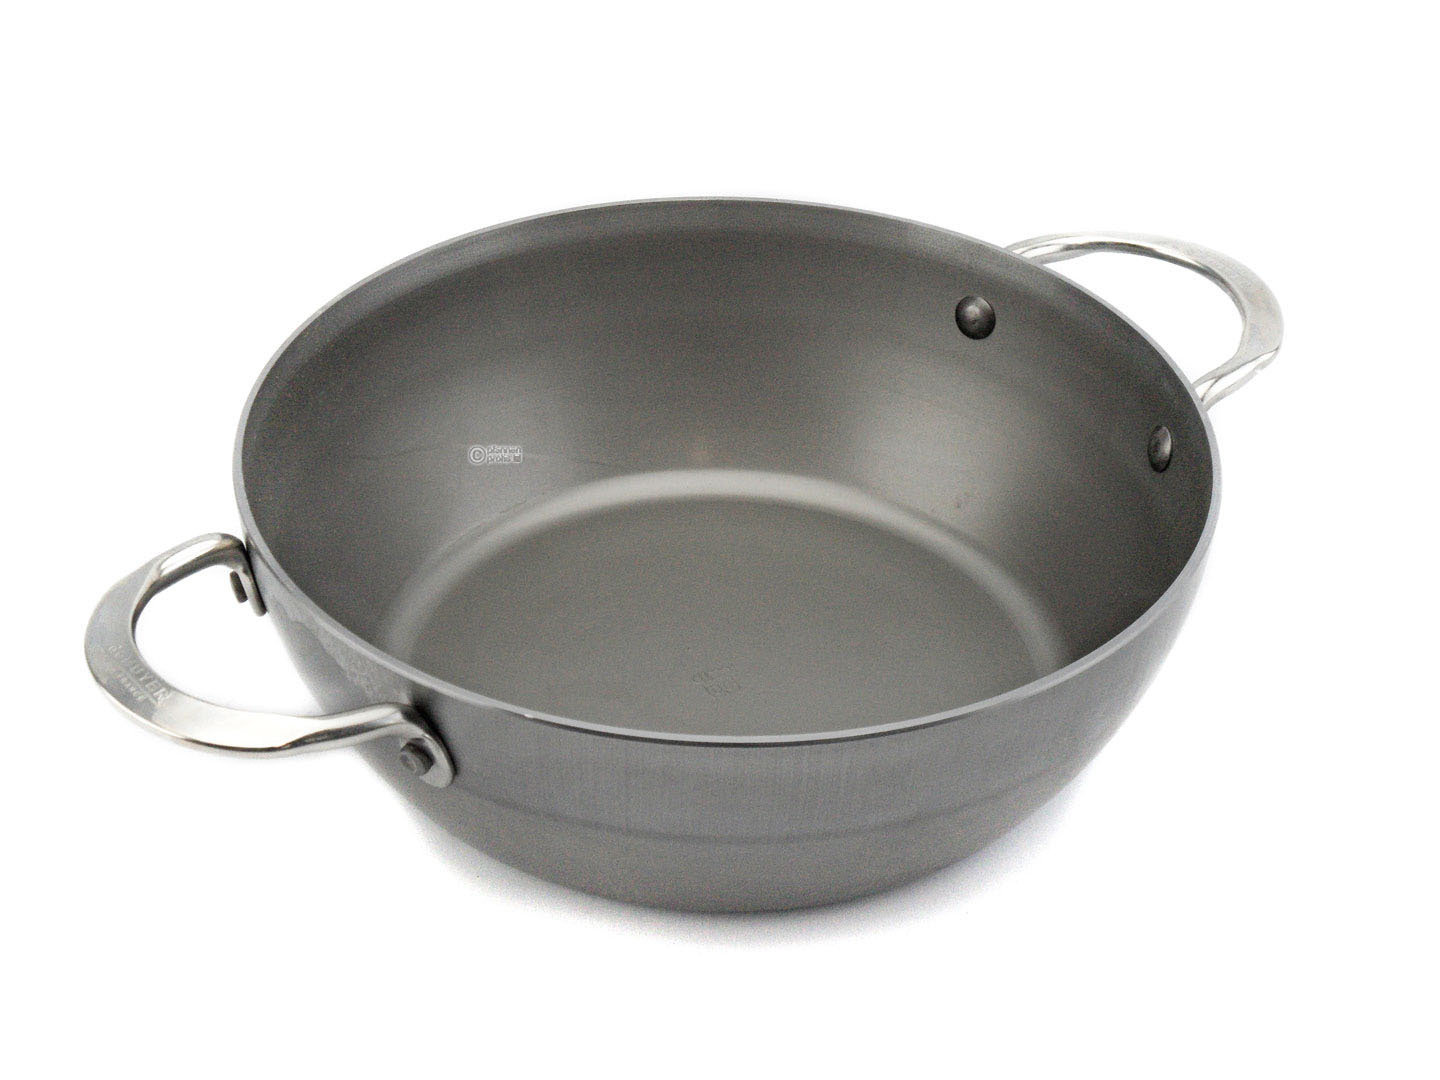 DE BUYER iron country pan MINERAL B ELEMENT 24 cm deep skillet with 2 handles